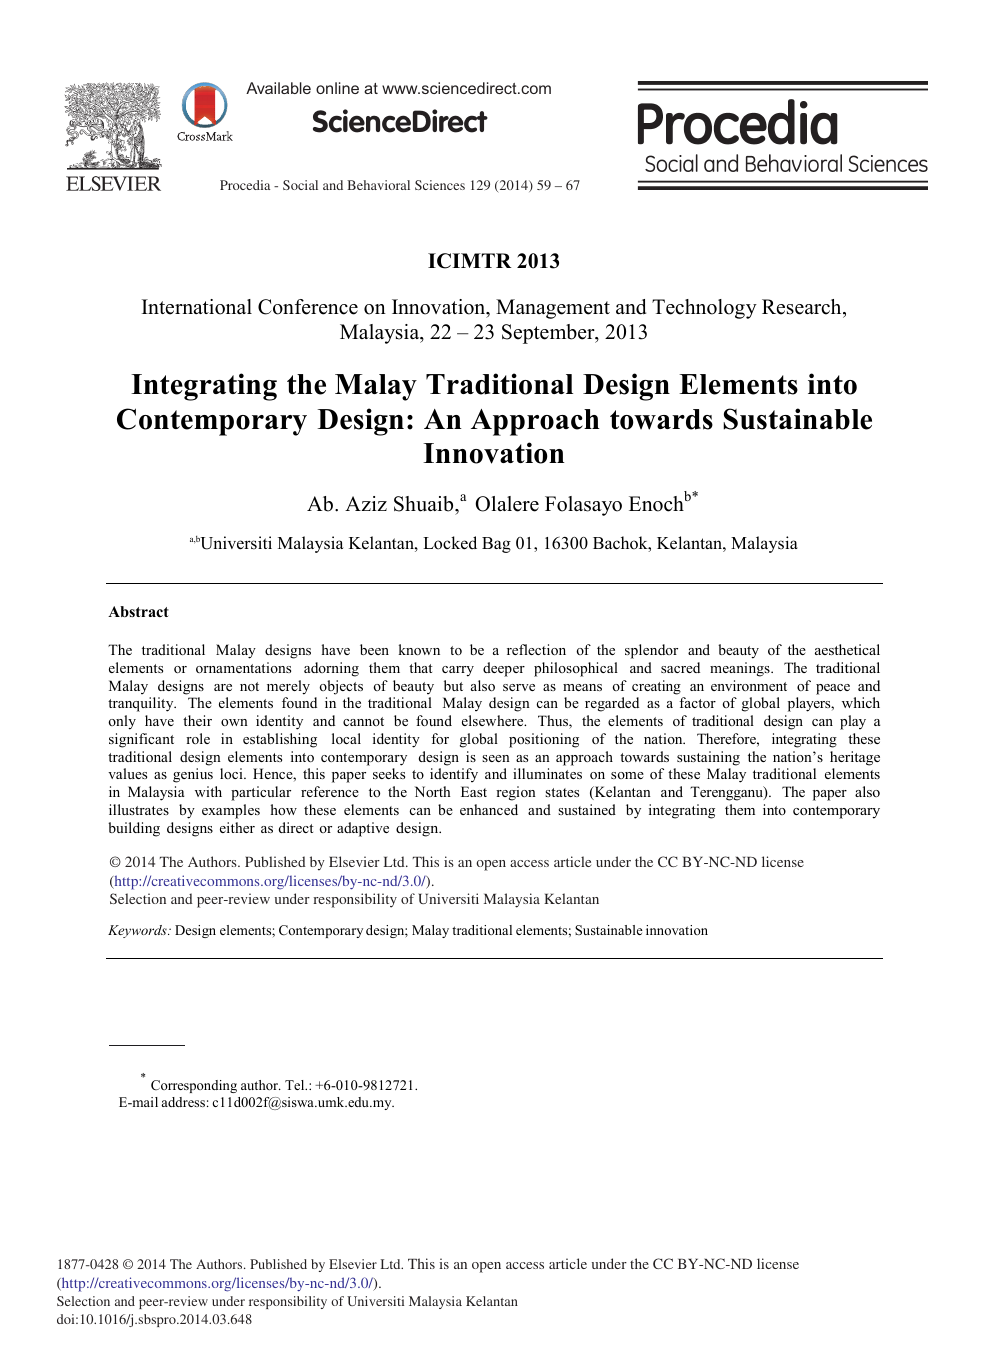 Integrating the Malay Traditional Design Elements into